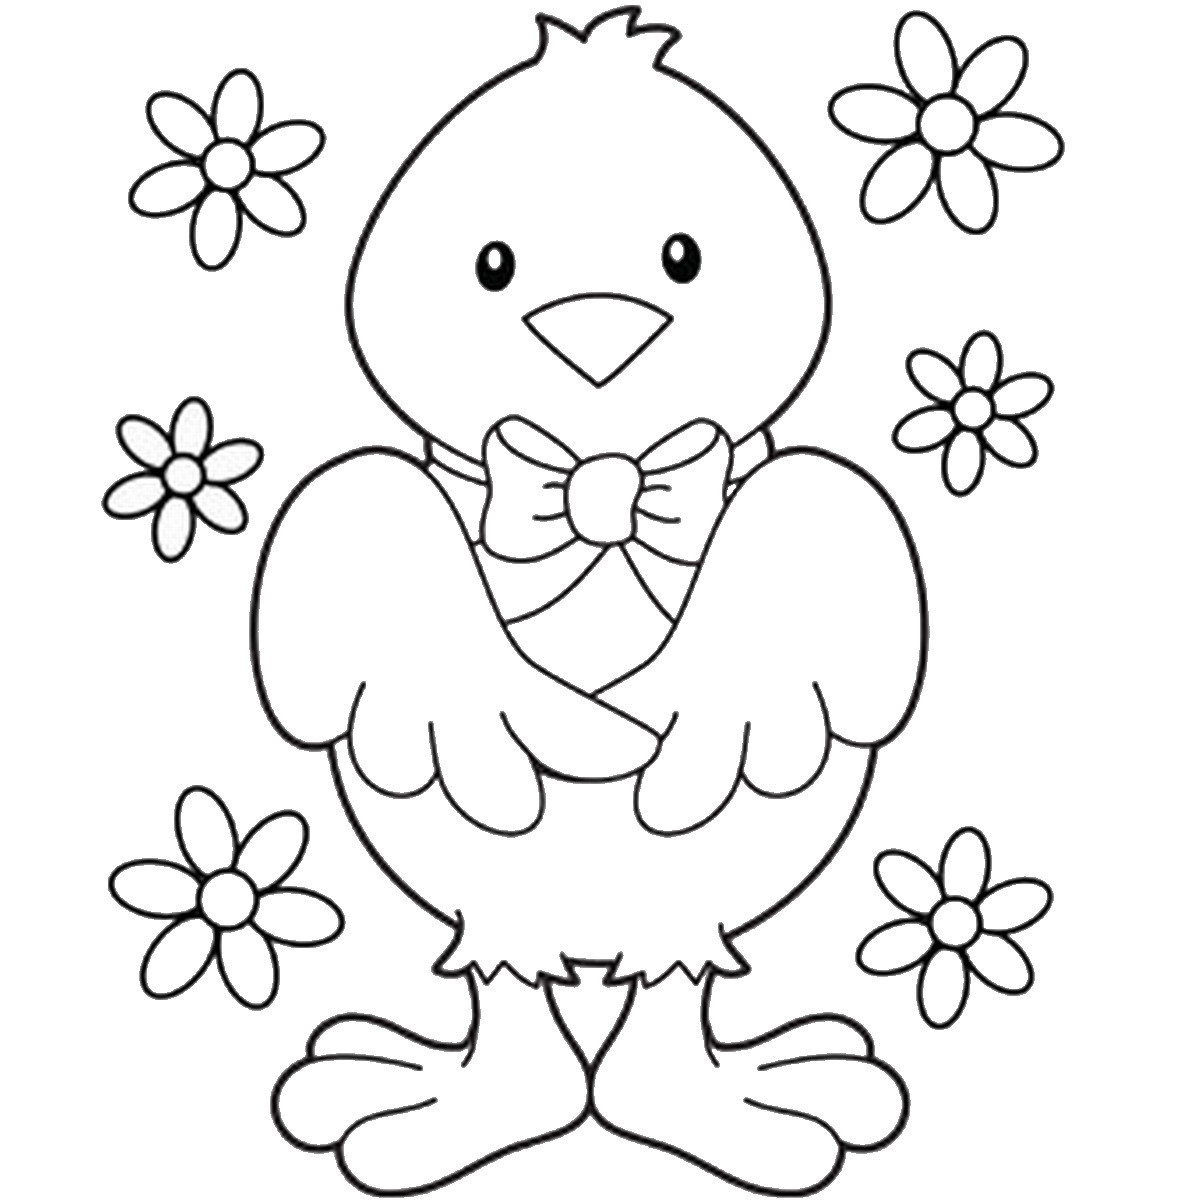 Easter Coloring Pages For Kids  Easter Coloring Pages